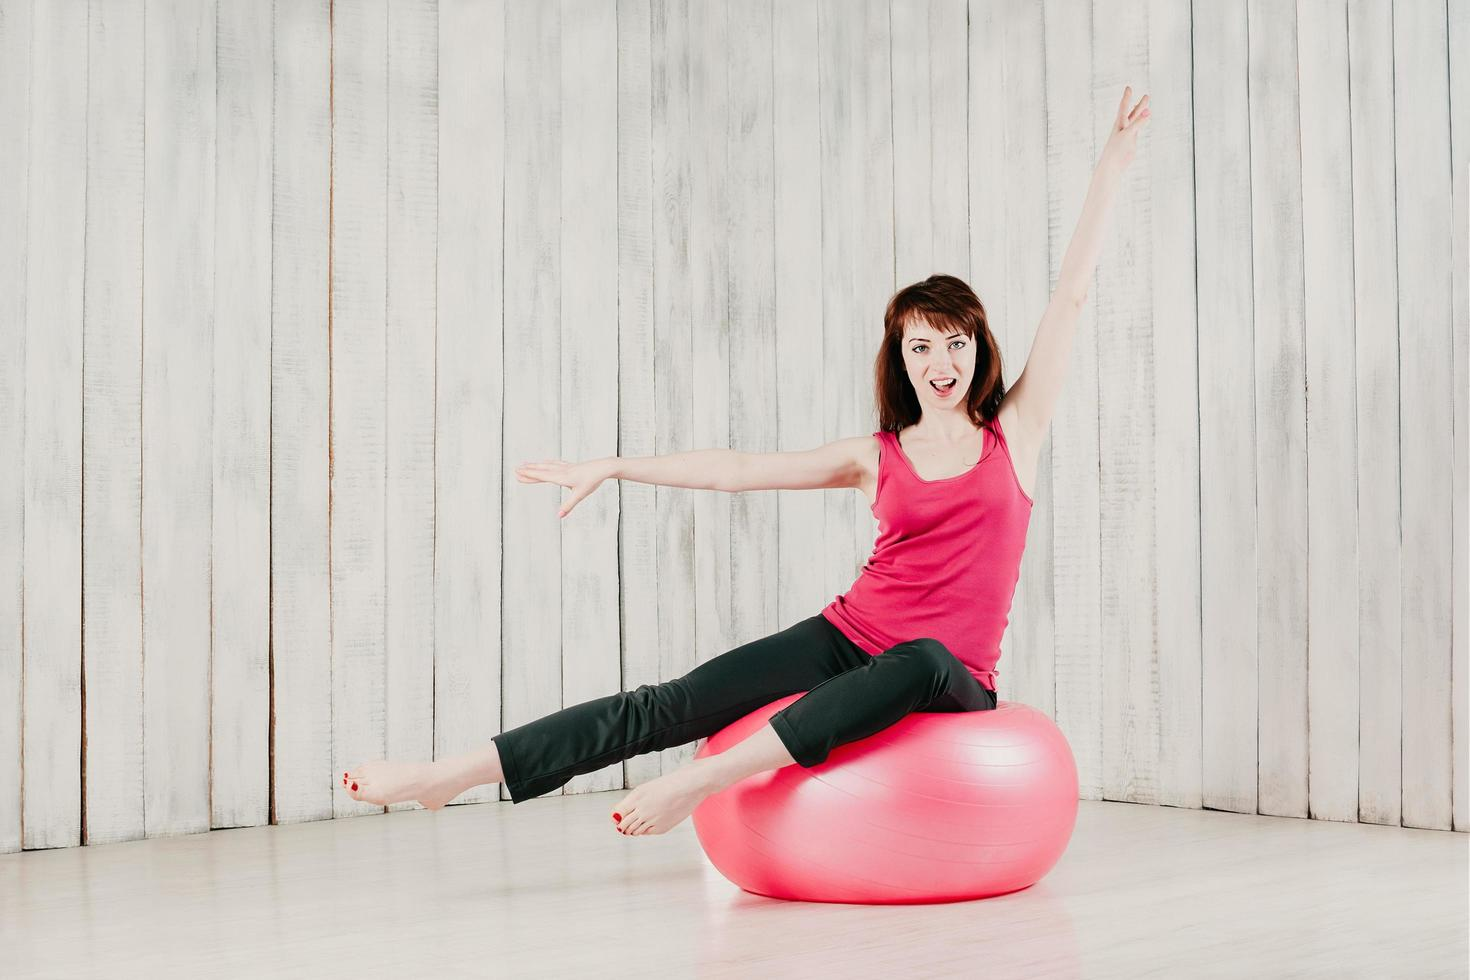 A girl in a pink top, sitting on a pink fitball in a gym photo